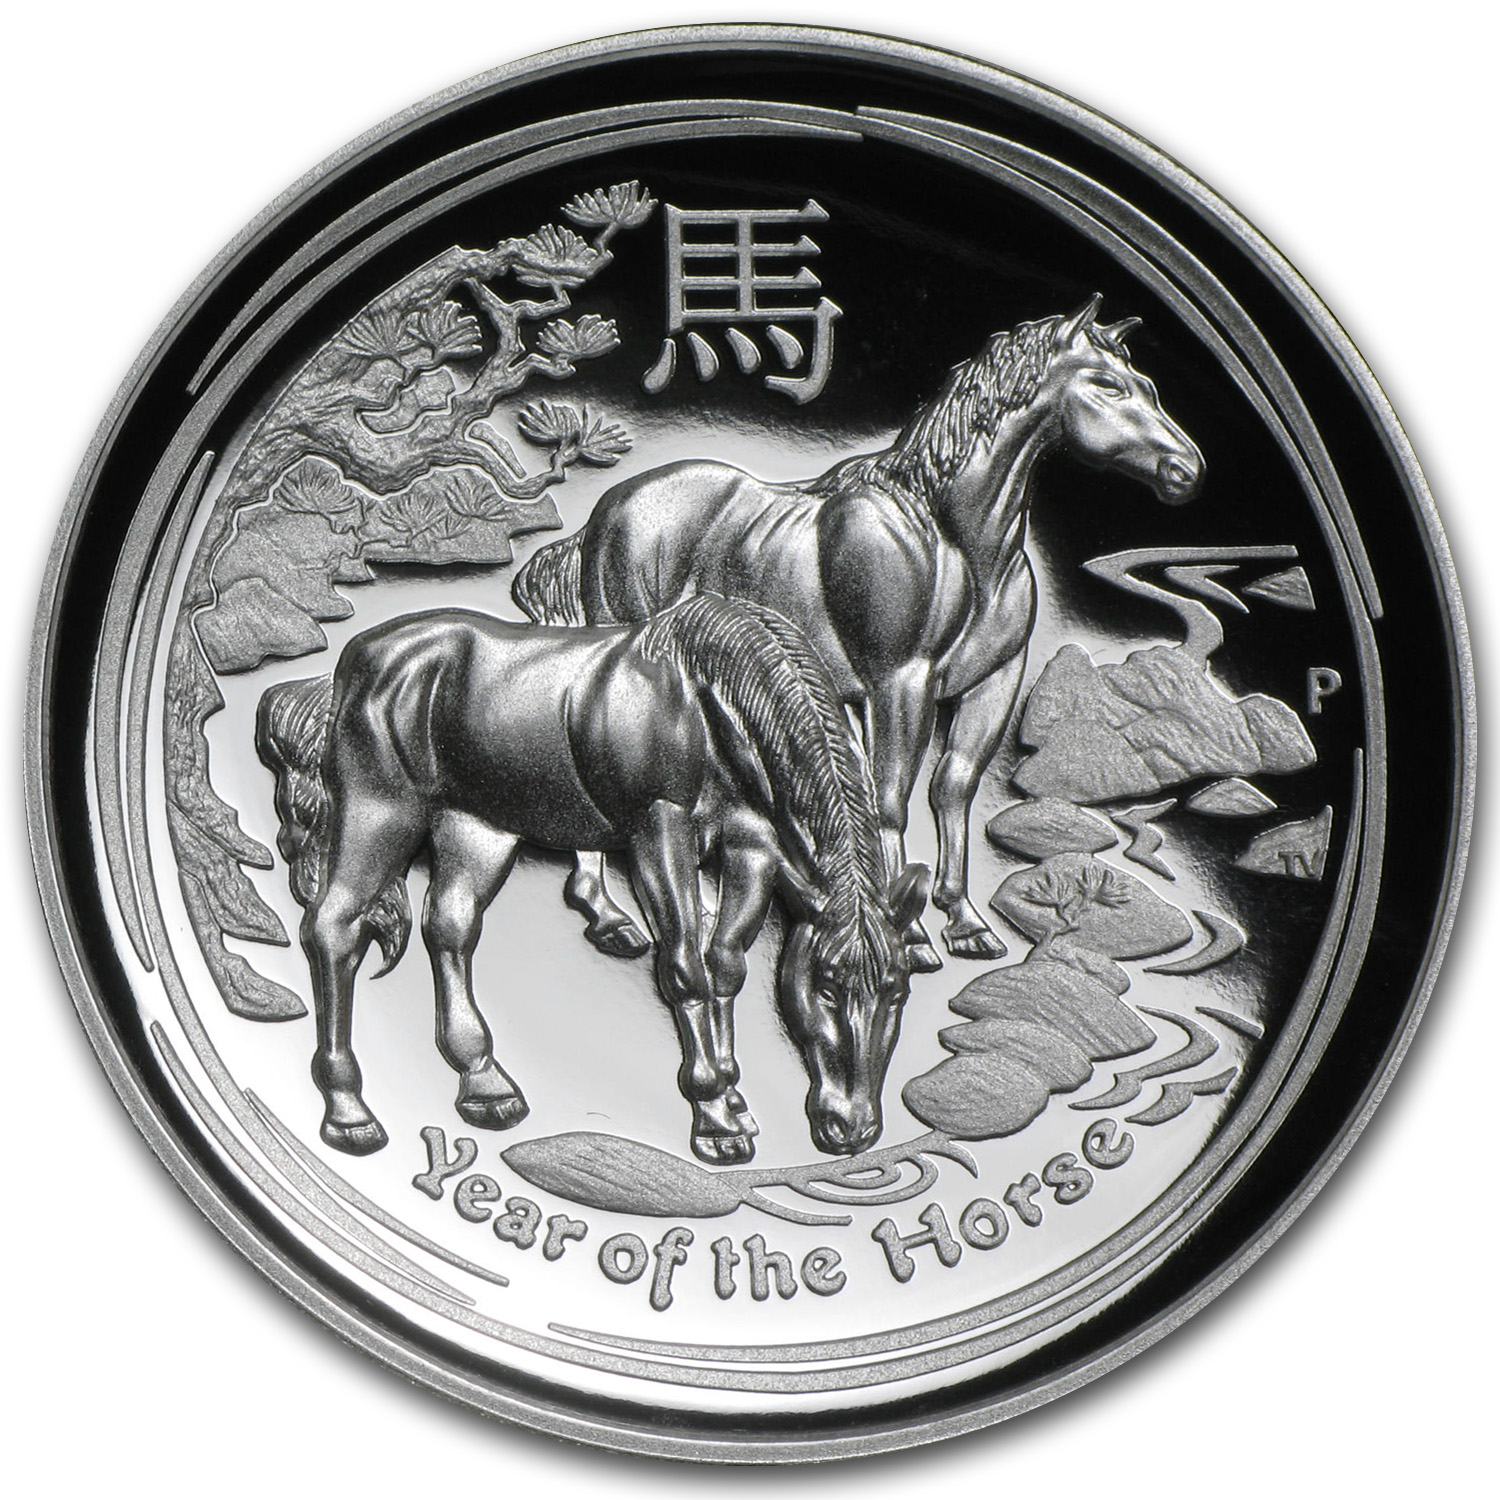 2014 1 oz Silver Year of the Horse Proof (High Relief)